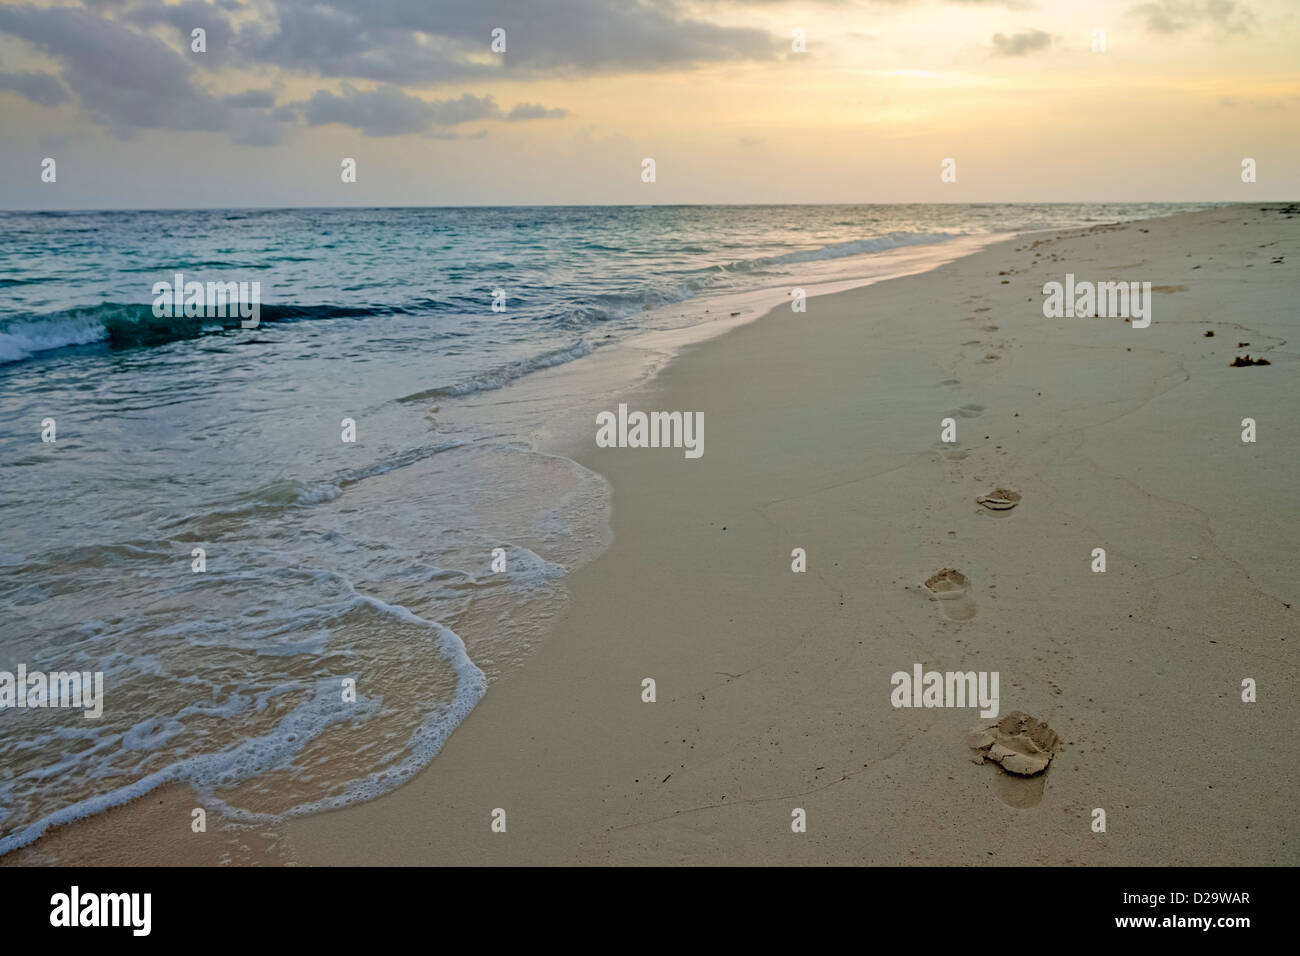 Footprints in sand at daybreak on the deserted beach at Punta Cana, Dominican Republic, Caribbean - Stock Image